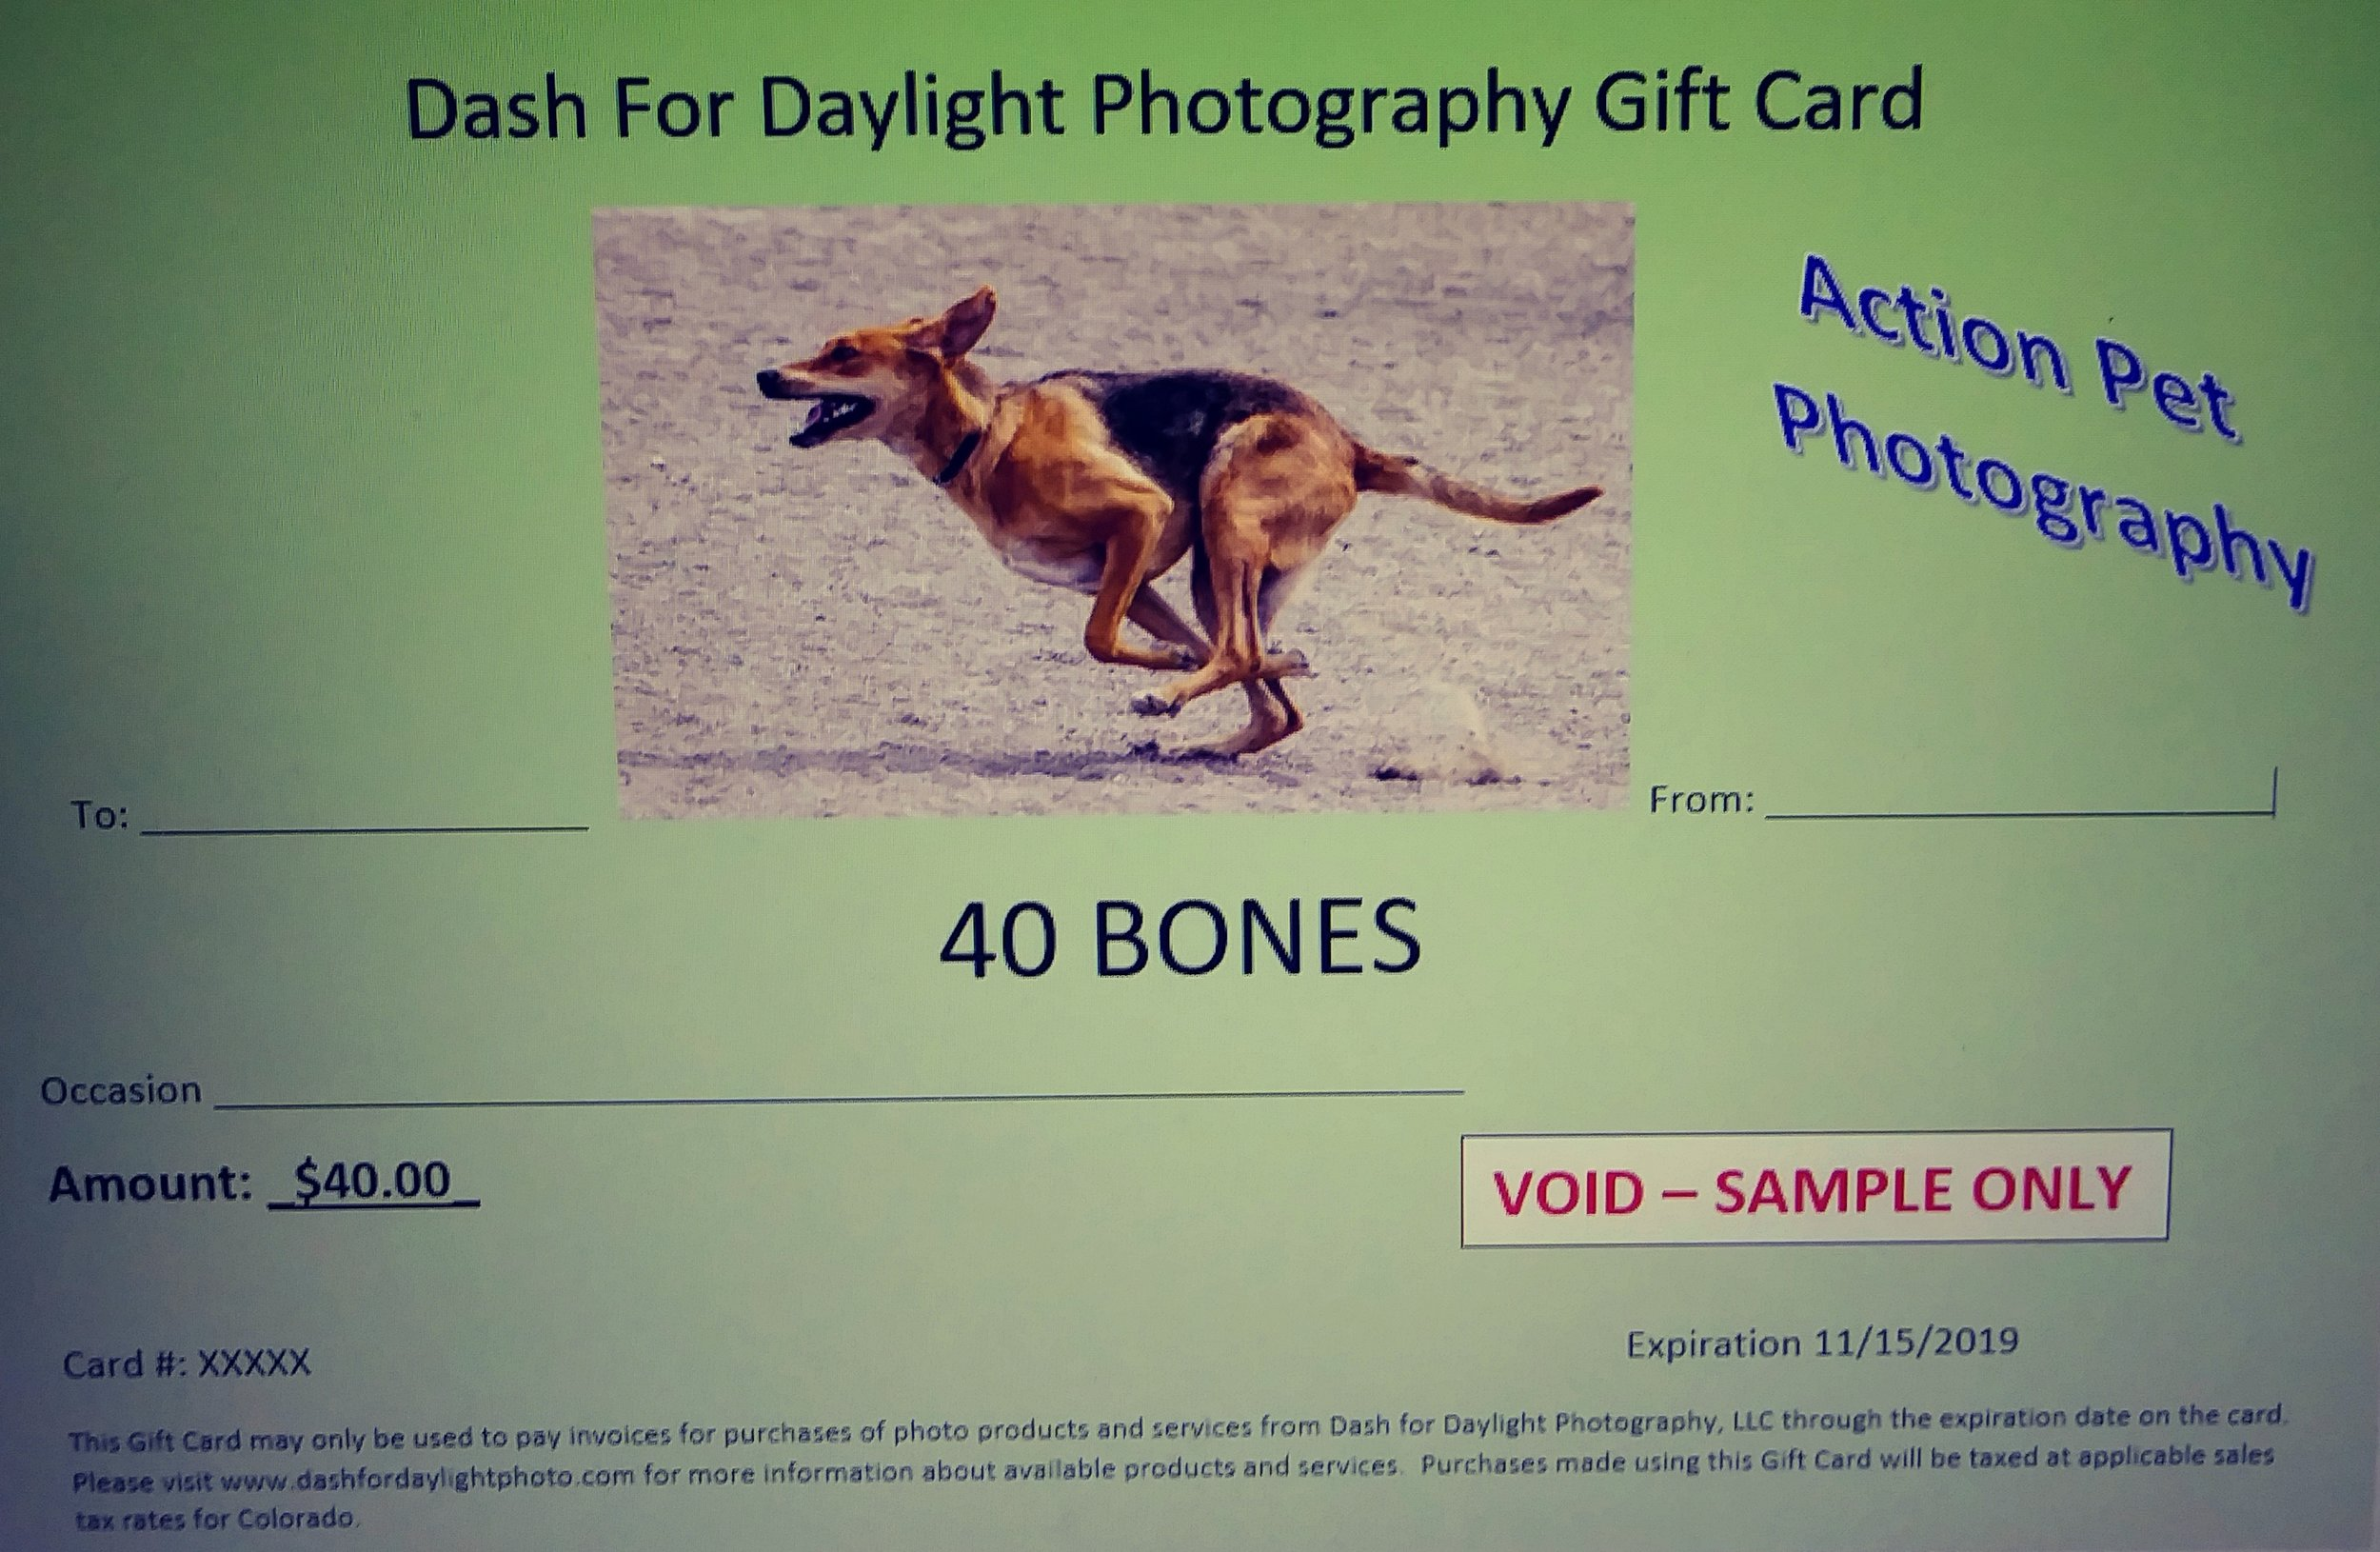 Dash4Daylight Gift Card_v5d-1.jpg